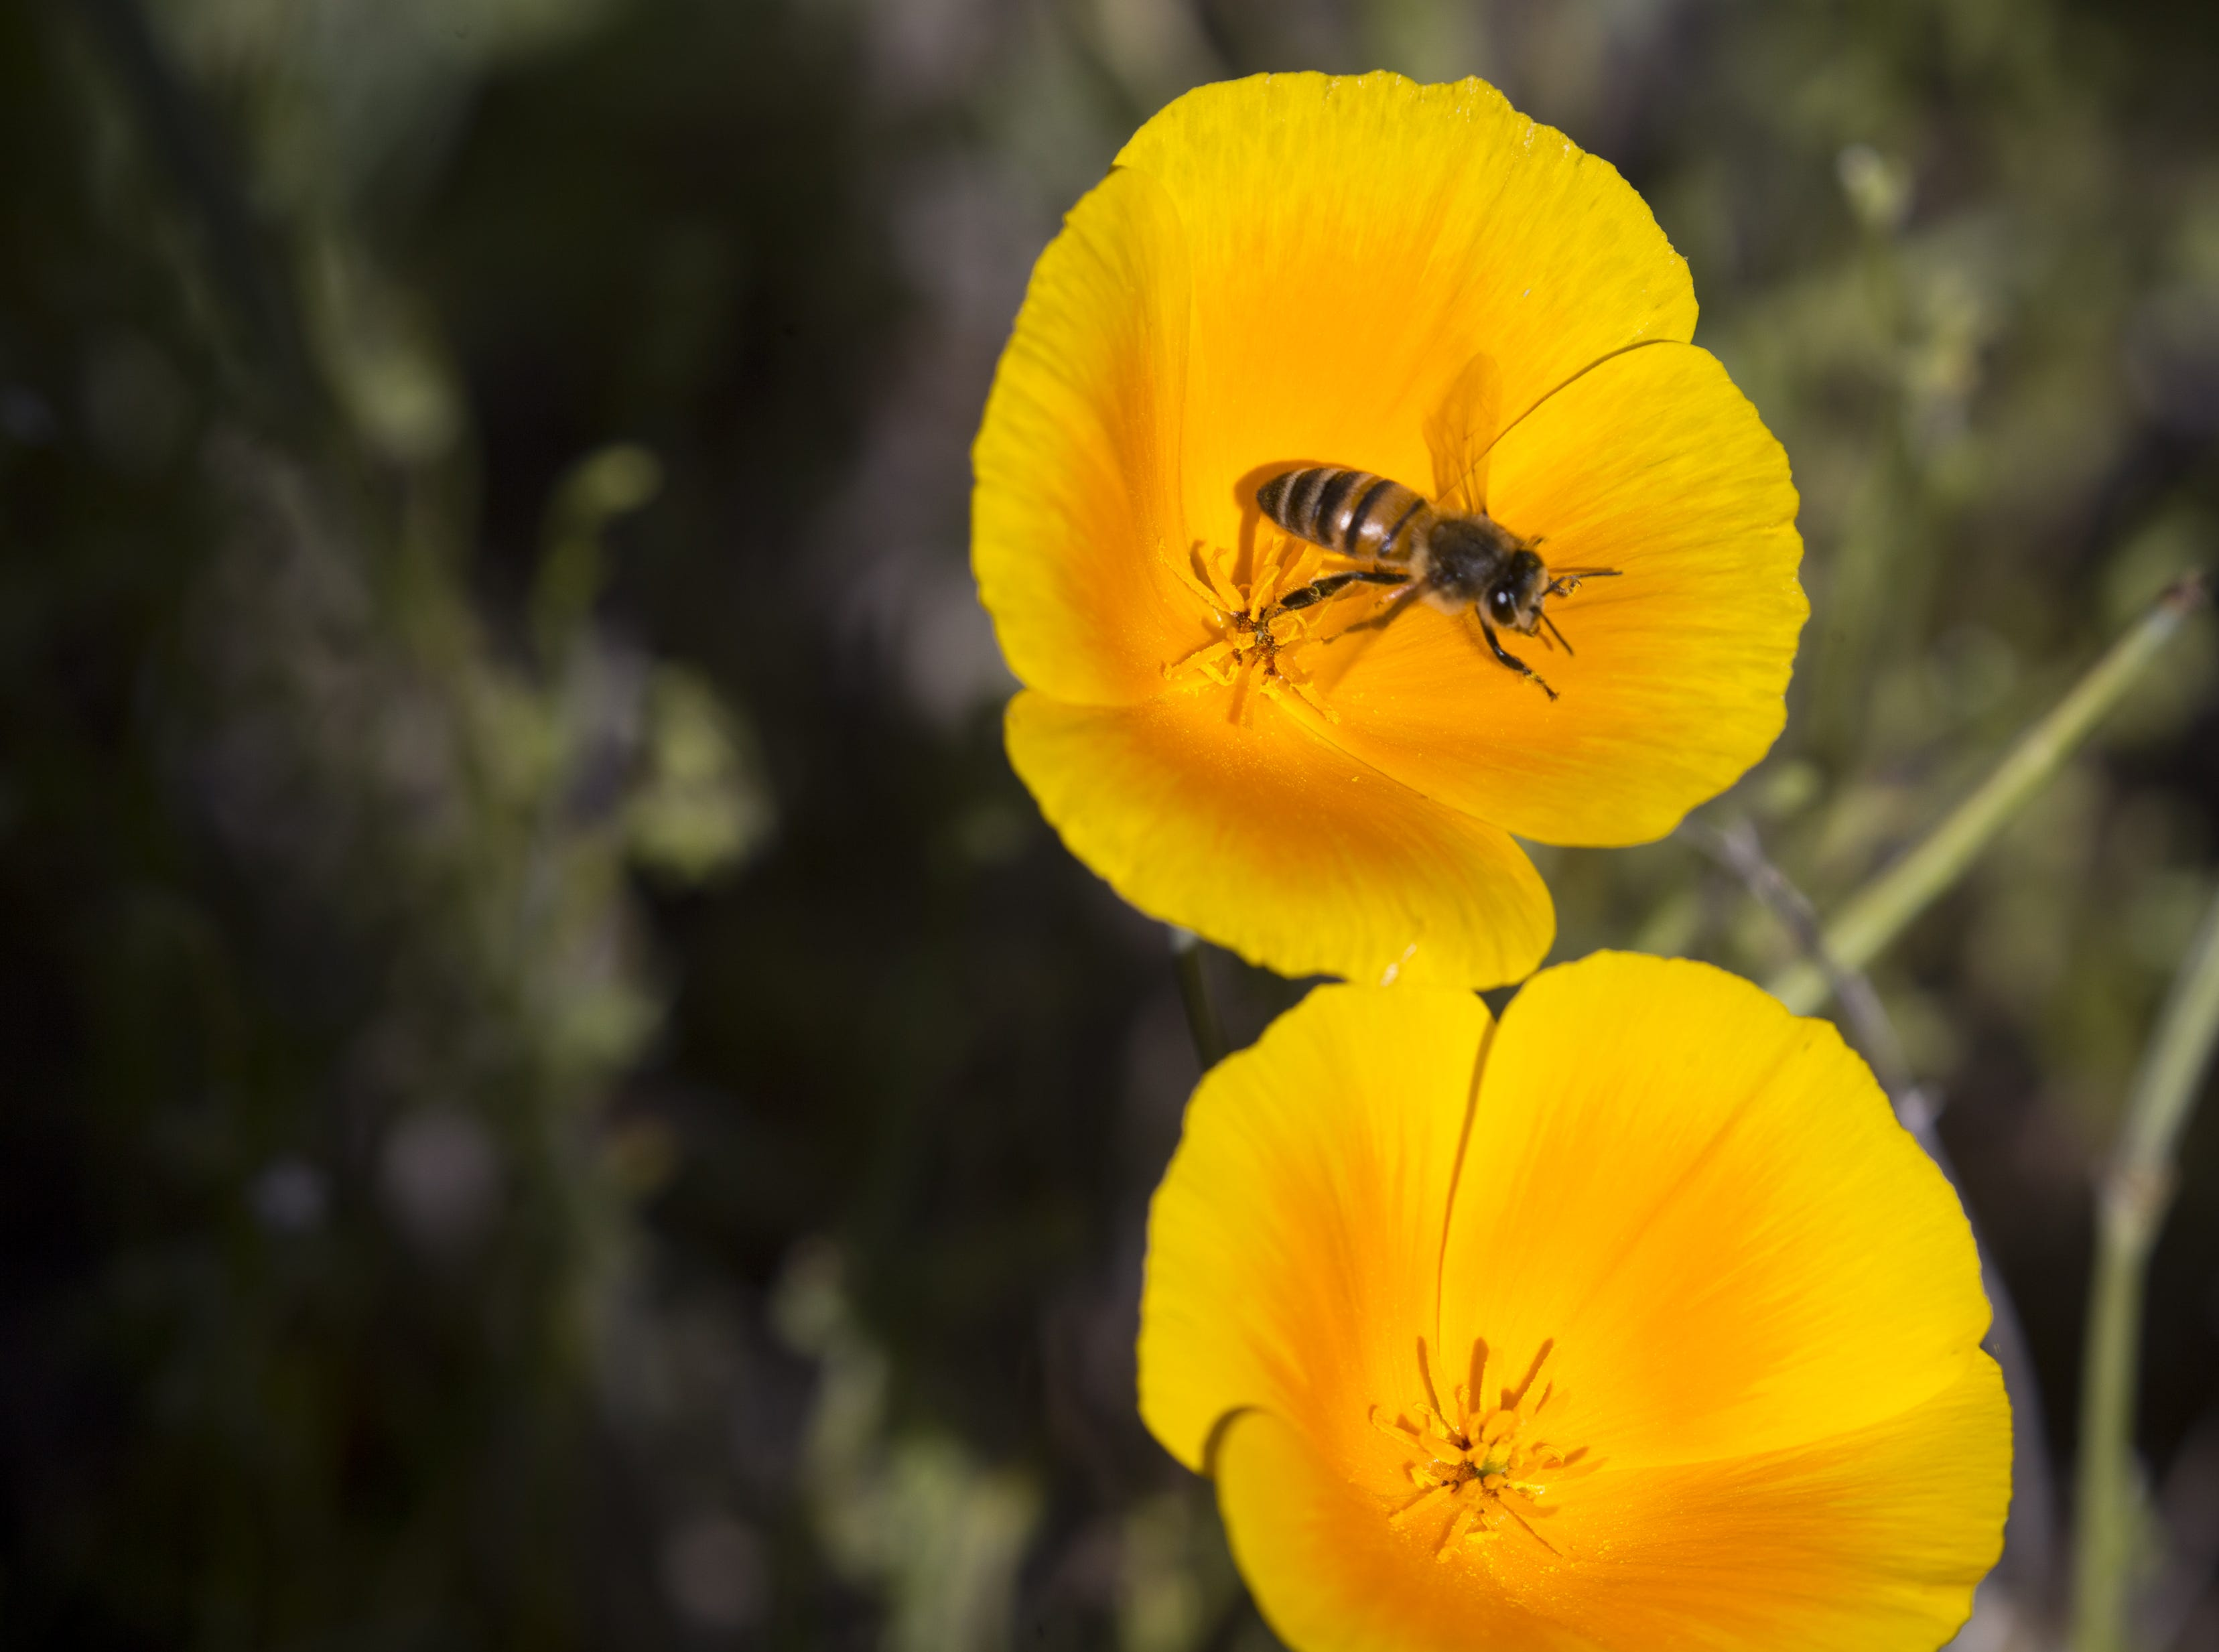 A bee on a poppy, March 5, 2019, at Picacho Peak State Park, Arizona.